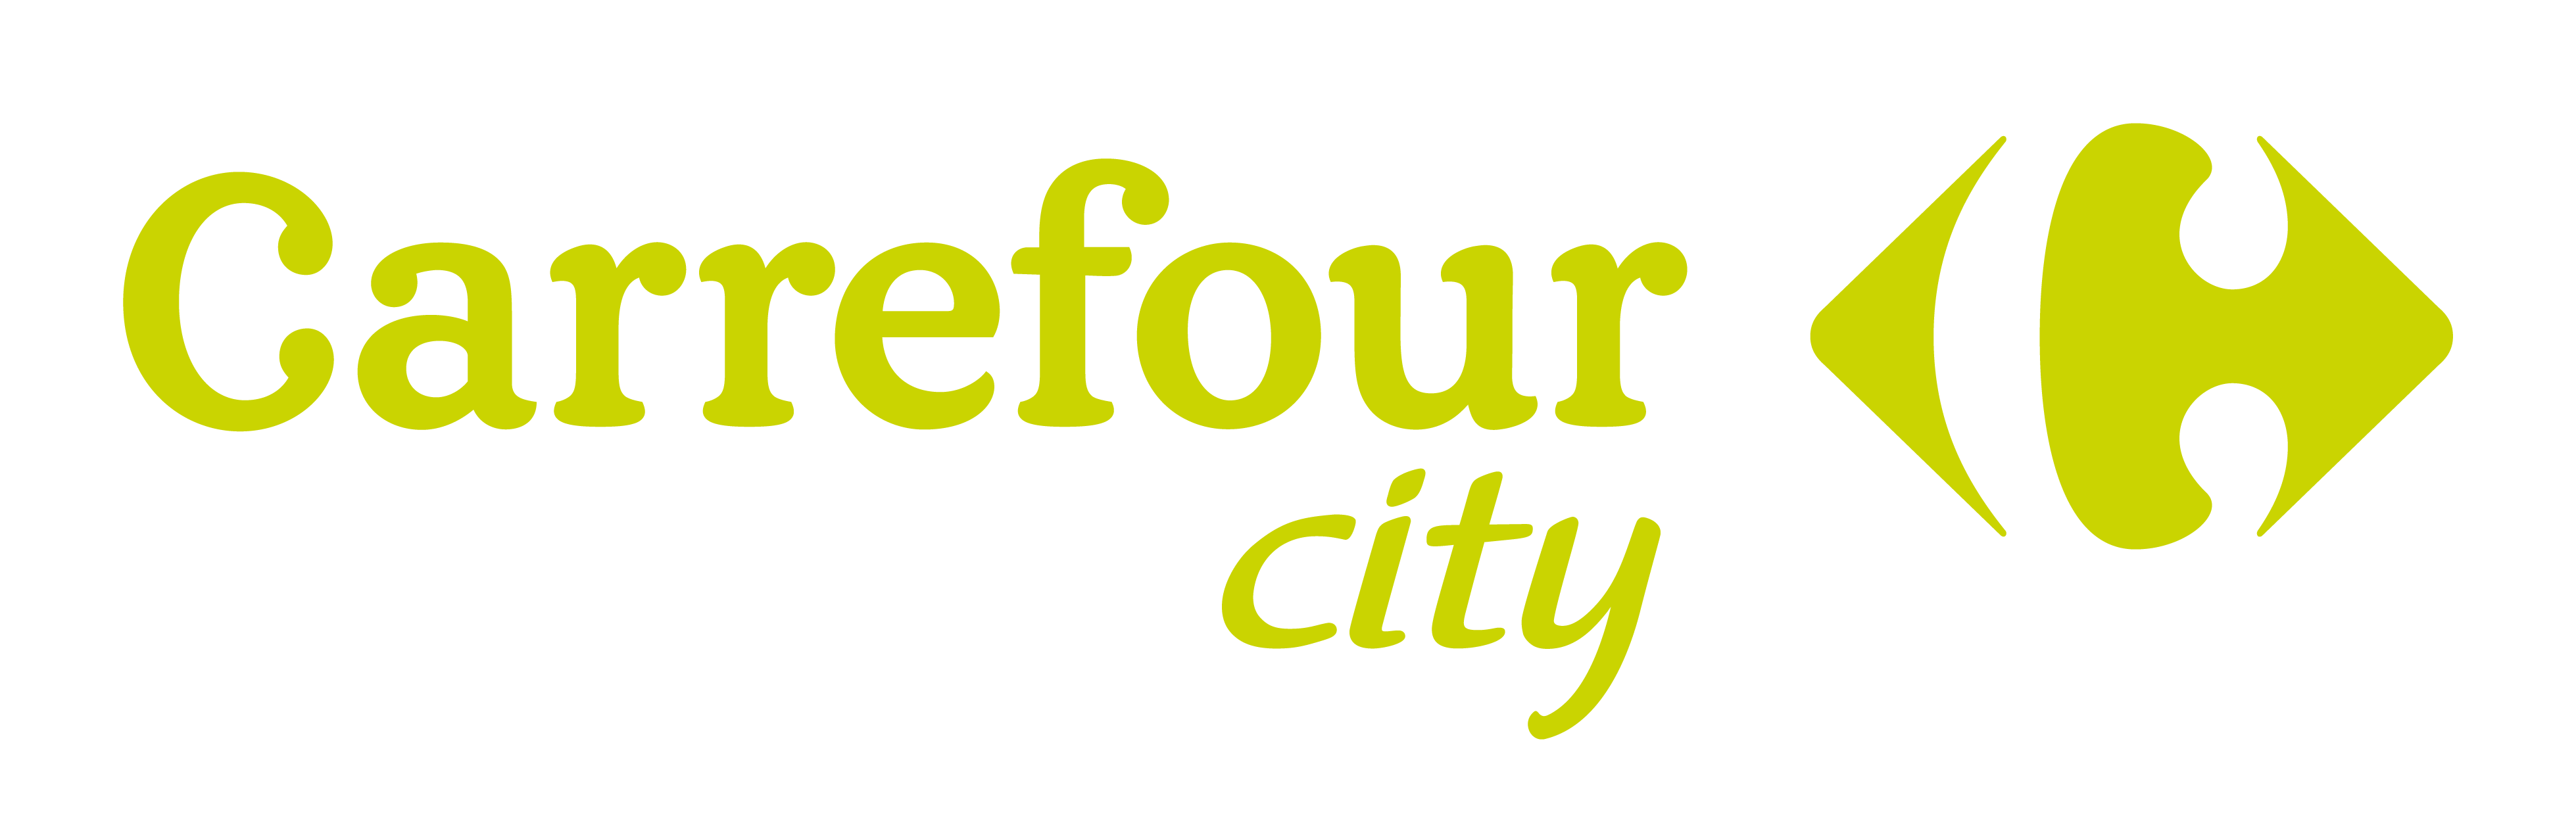 Carrefour_City